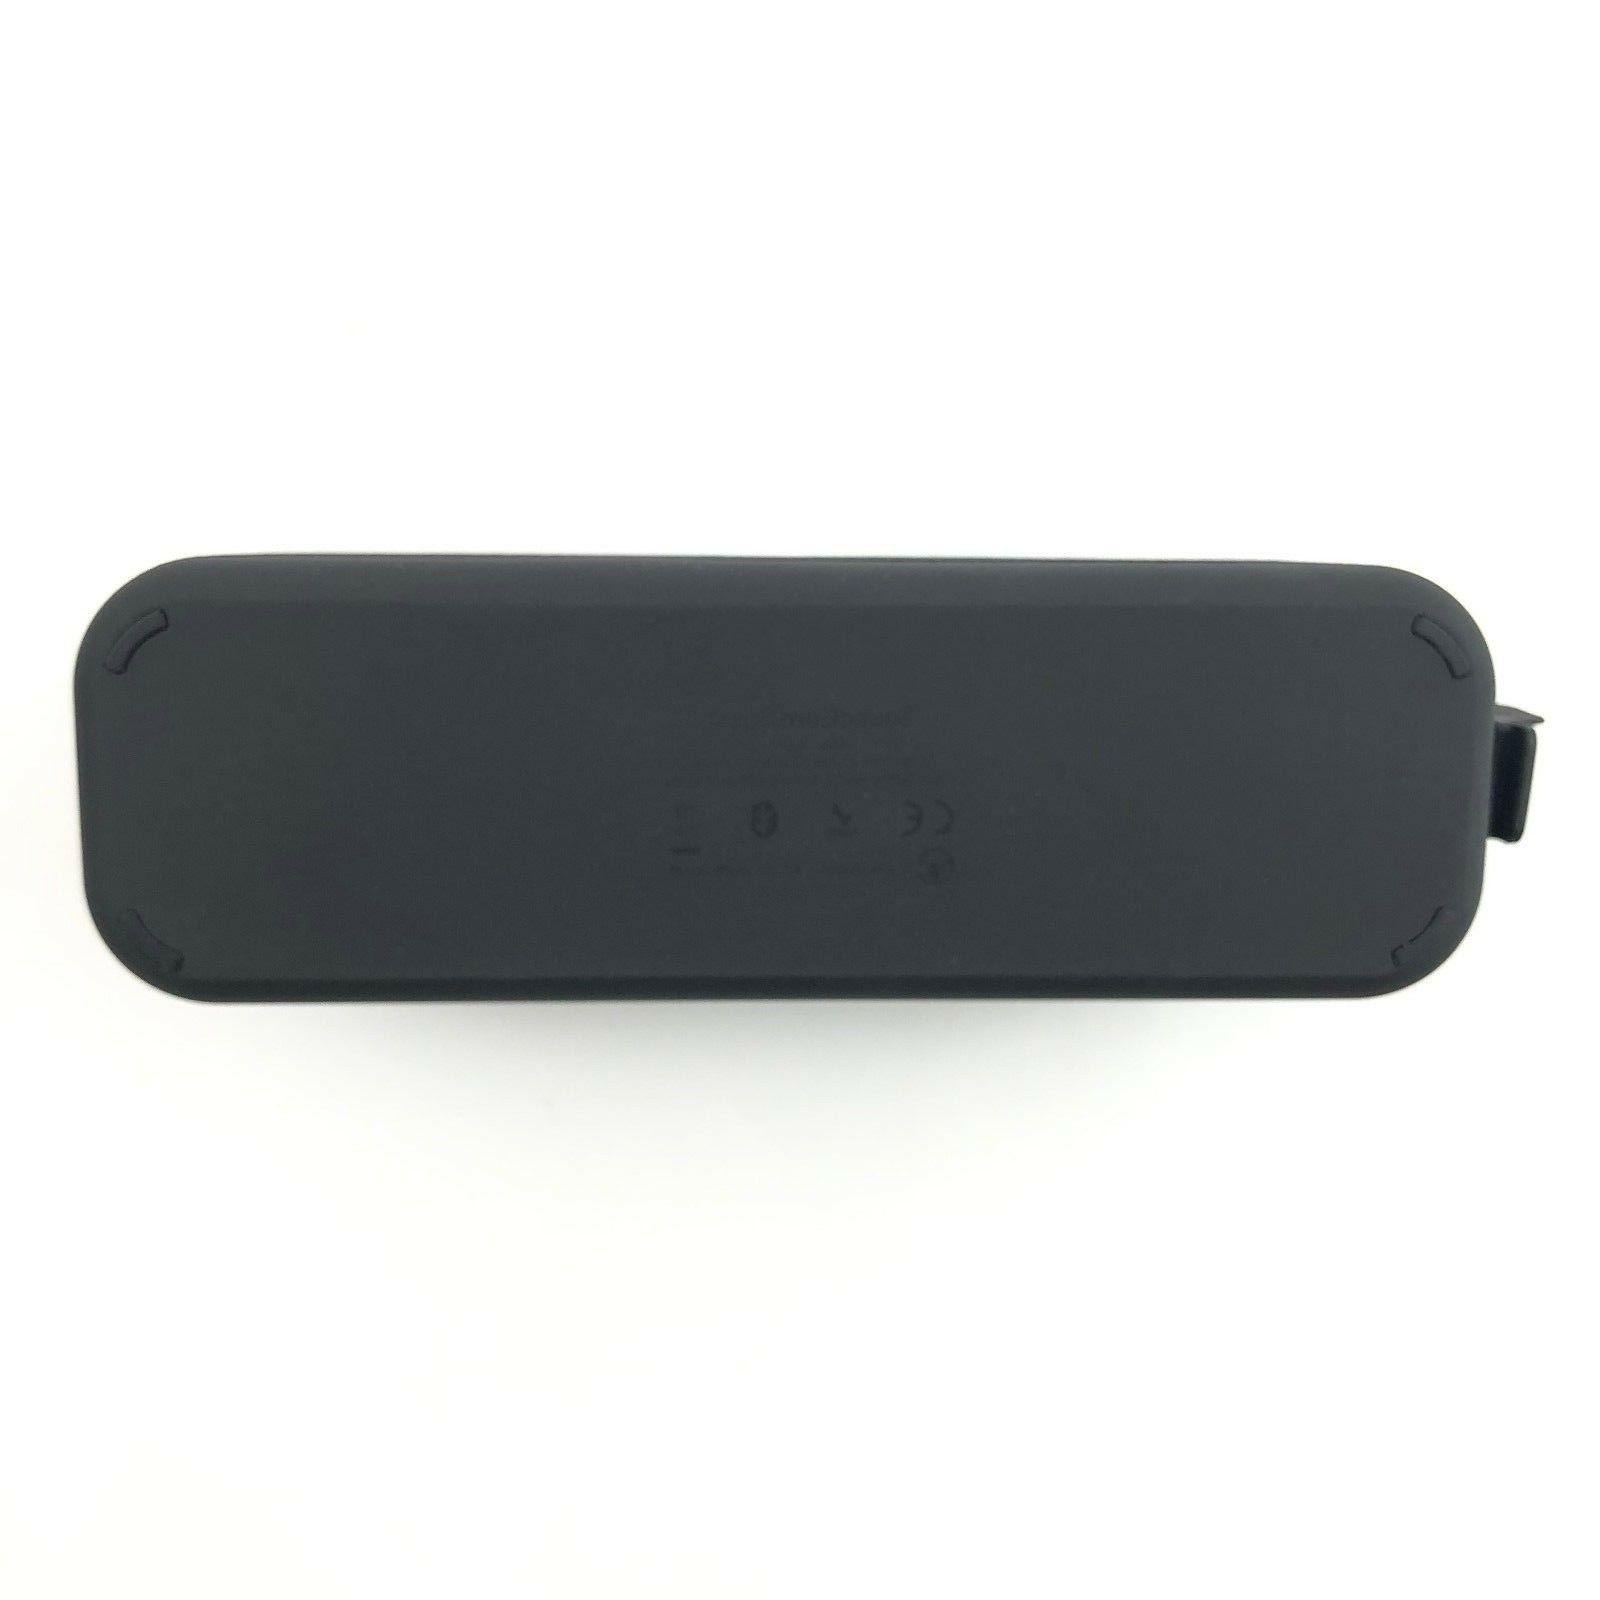 Anker SoundCore Wireless Playtime Black